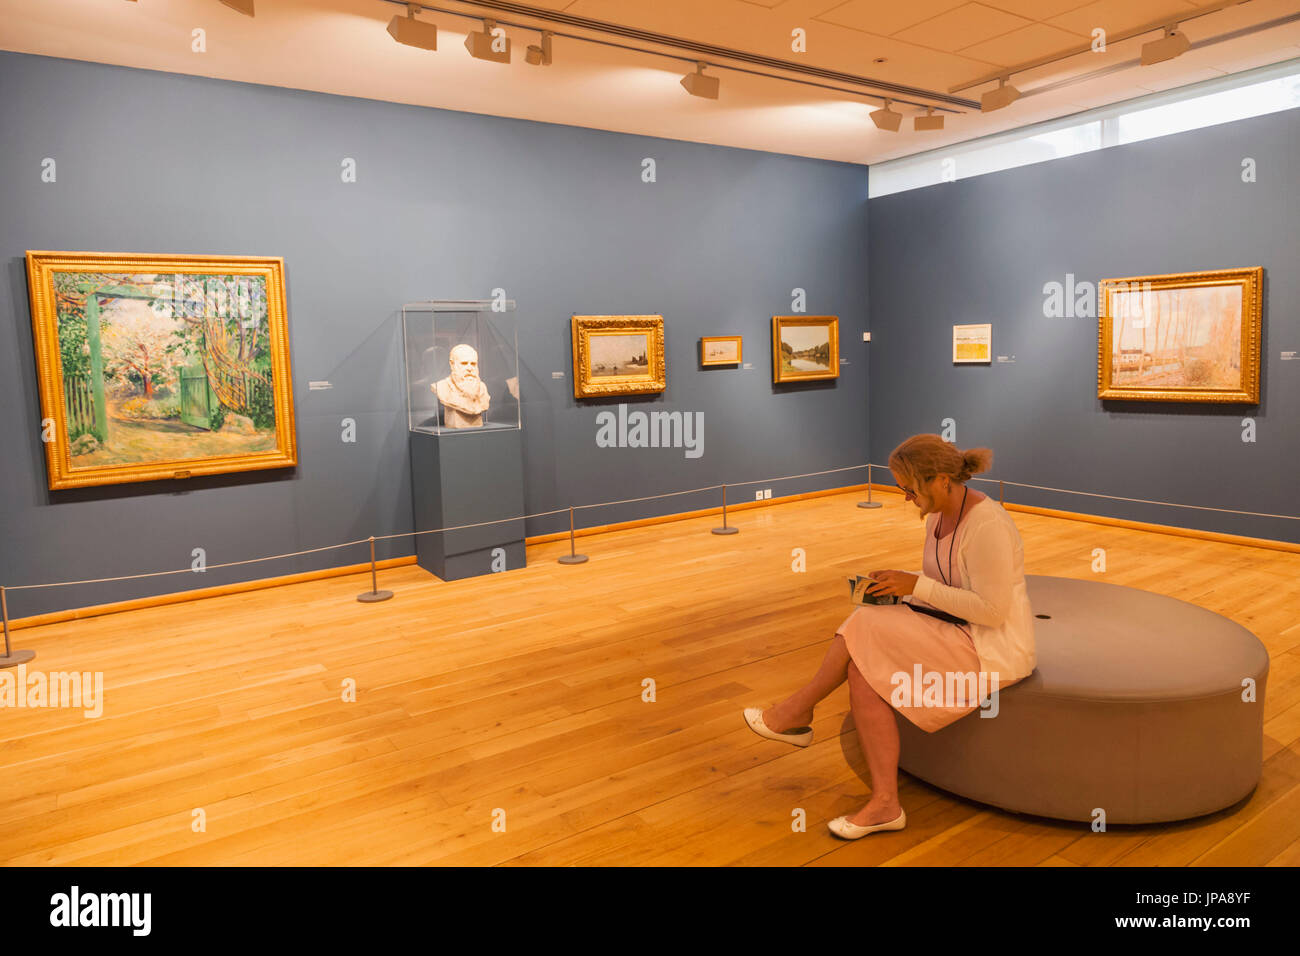 France, Normandy, Giverny, The Musee des Impressionnismes aka The Impressionist Museum - Stock Image